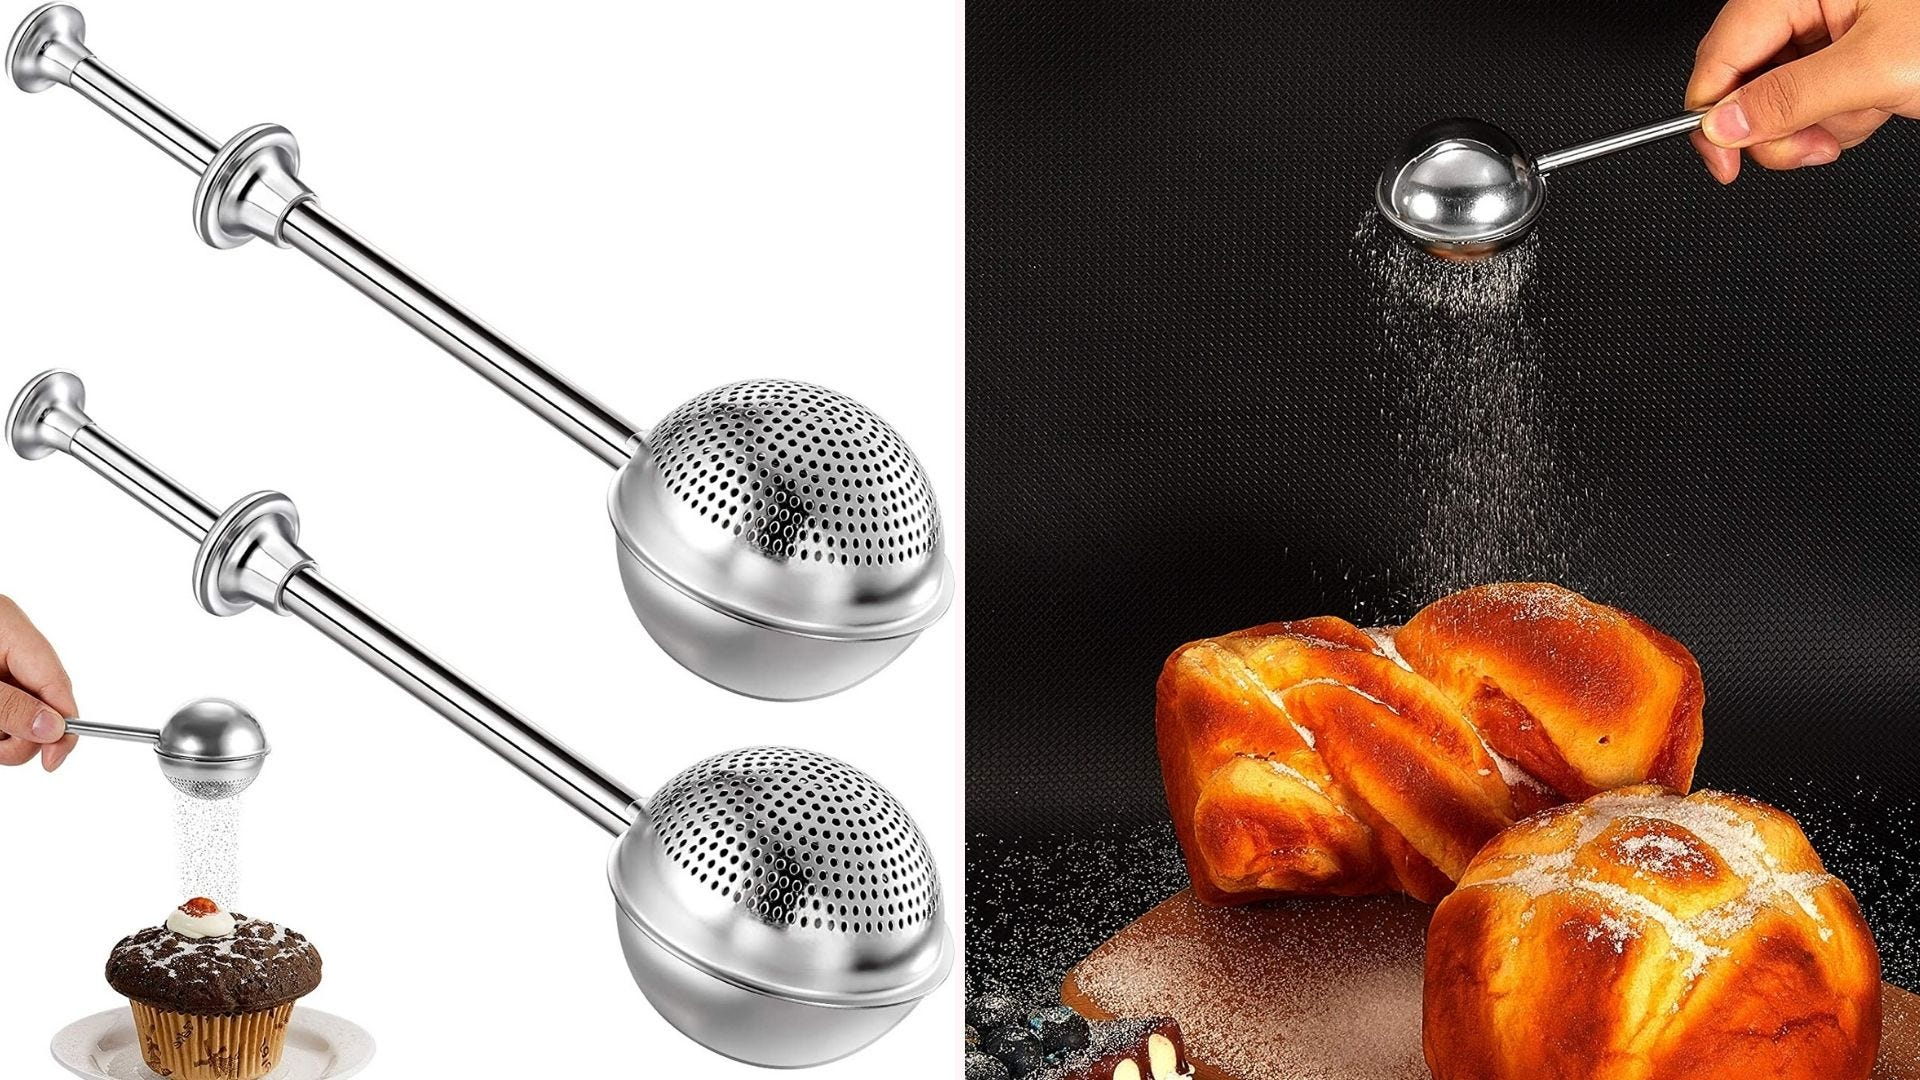 a silver rattle-like sugar dispenser with tiny holes to sprinkle sugar